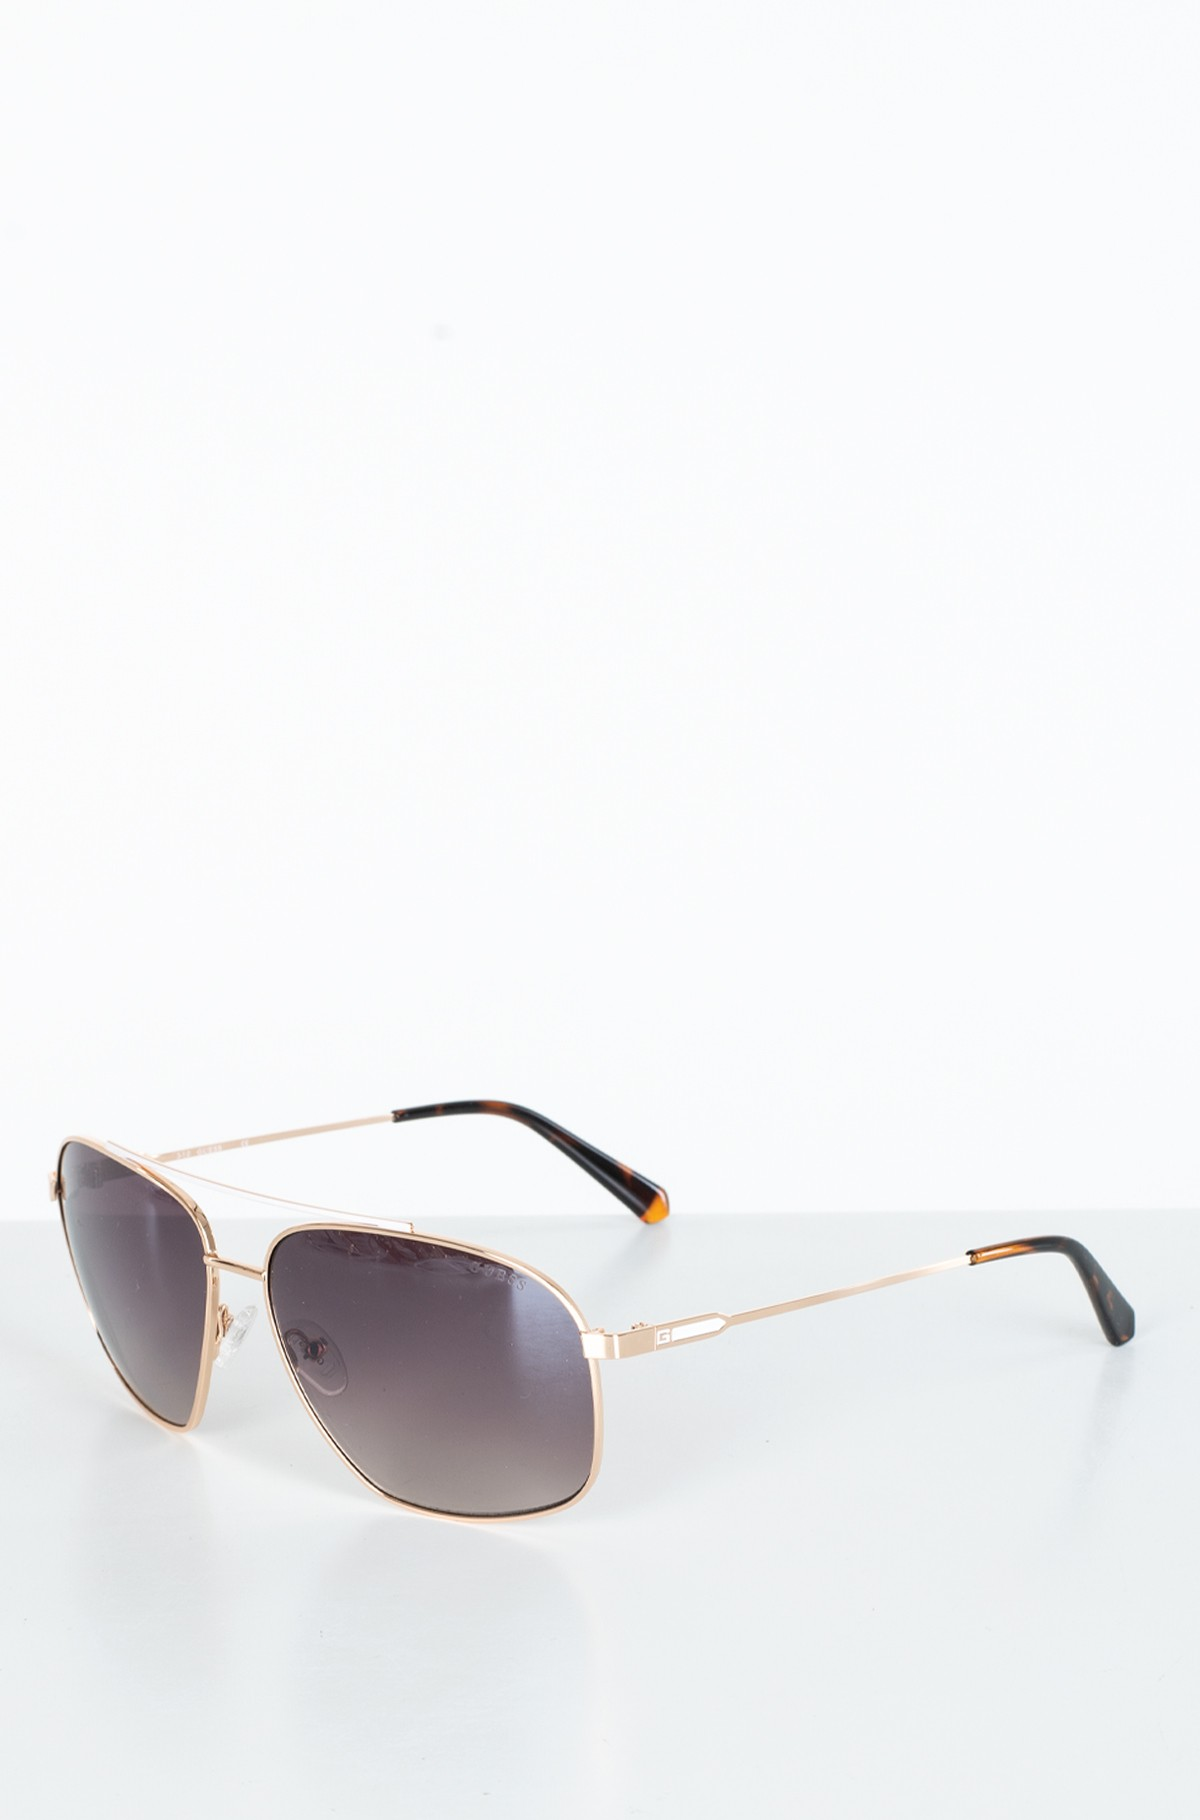 Sunglasses 6973-full-2